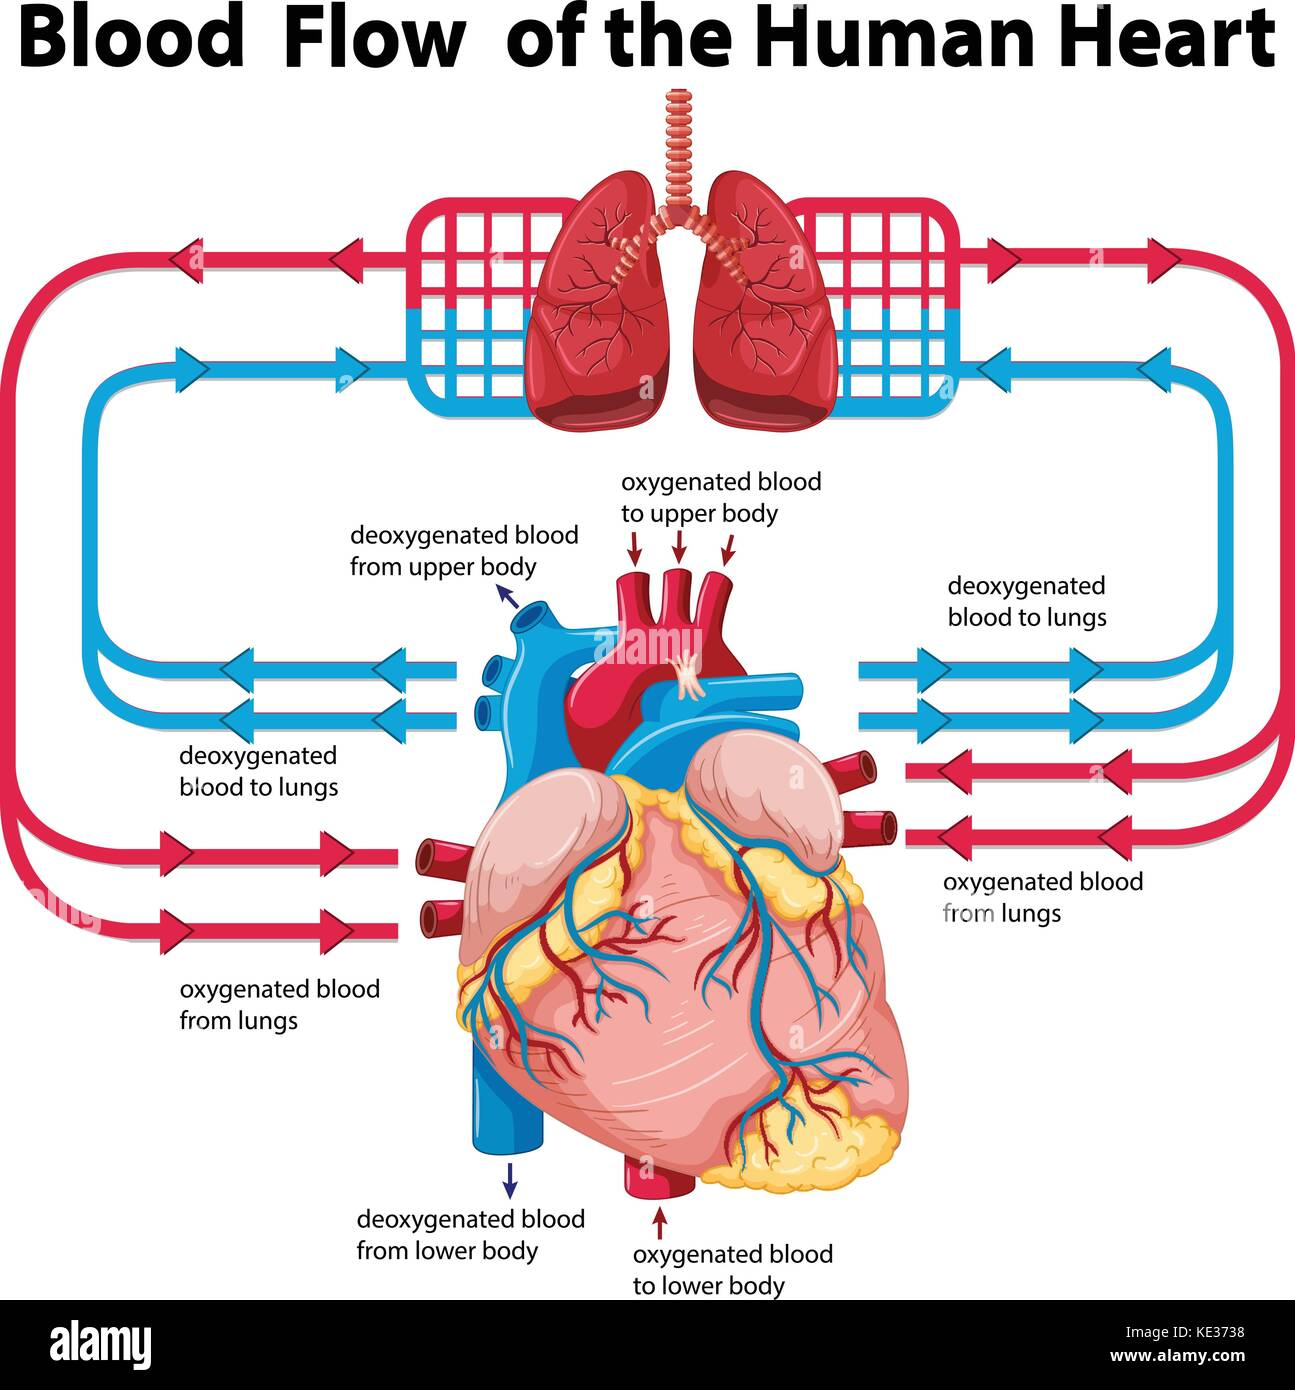 Diagram showing blood flow of human heart illustration stock diagram showing blood flow of human heart illustration pooptronica